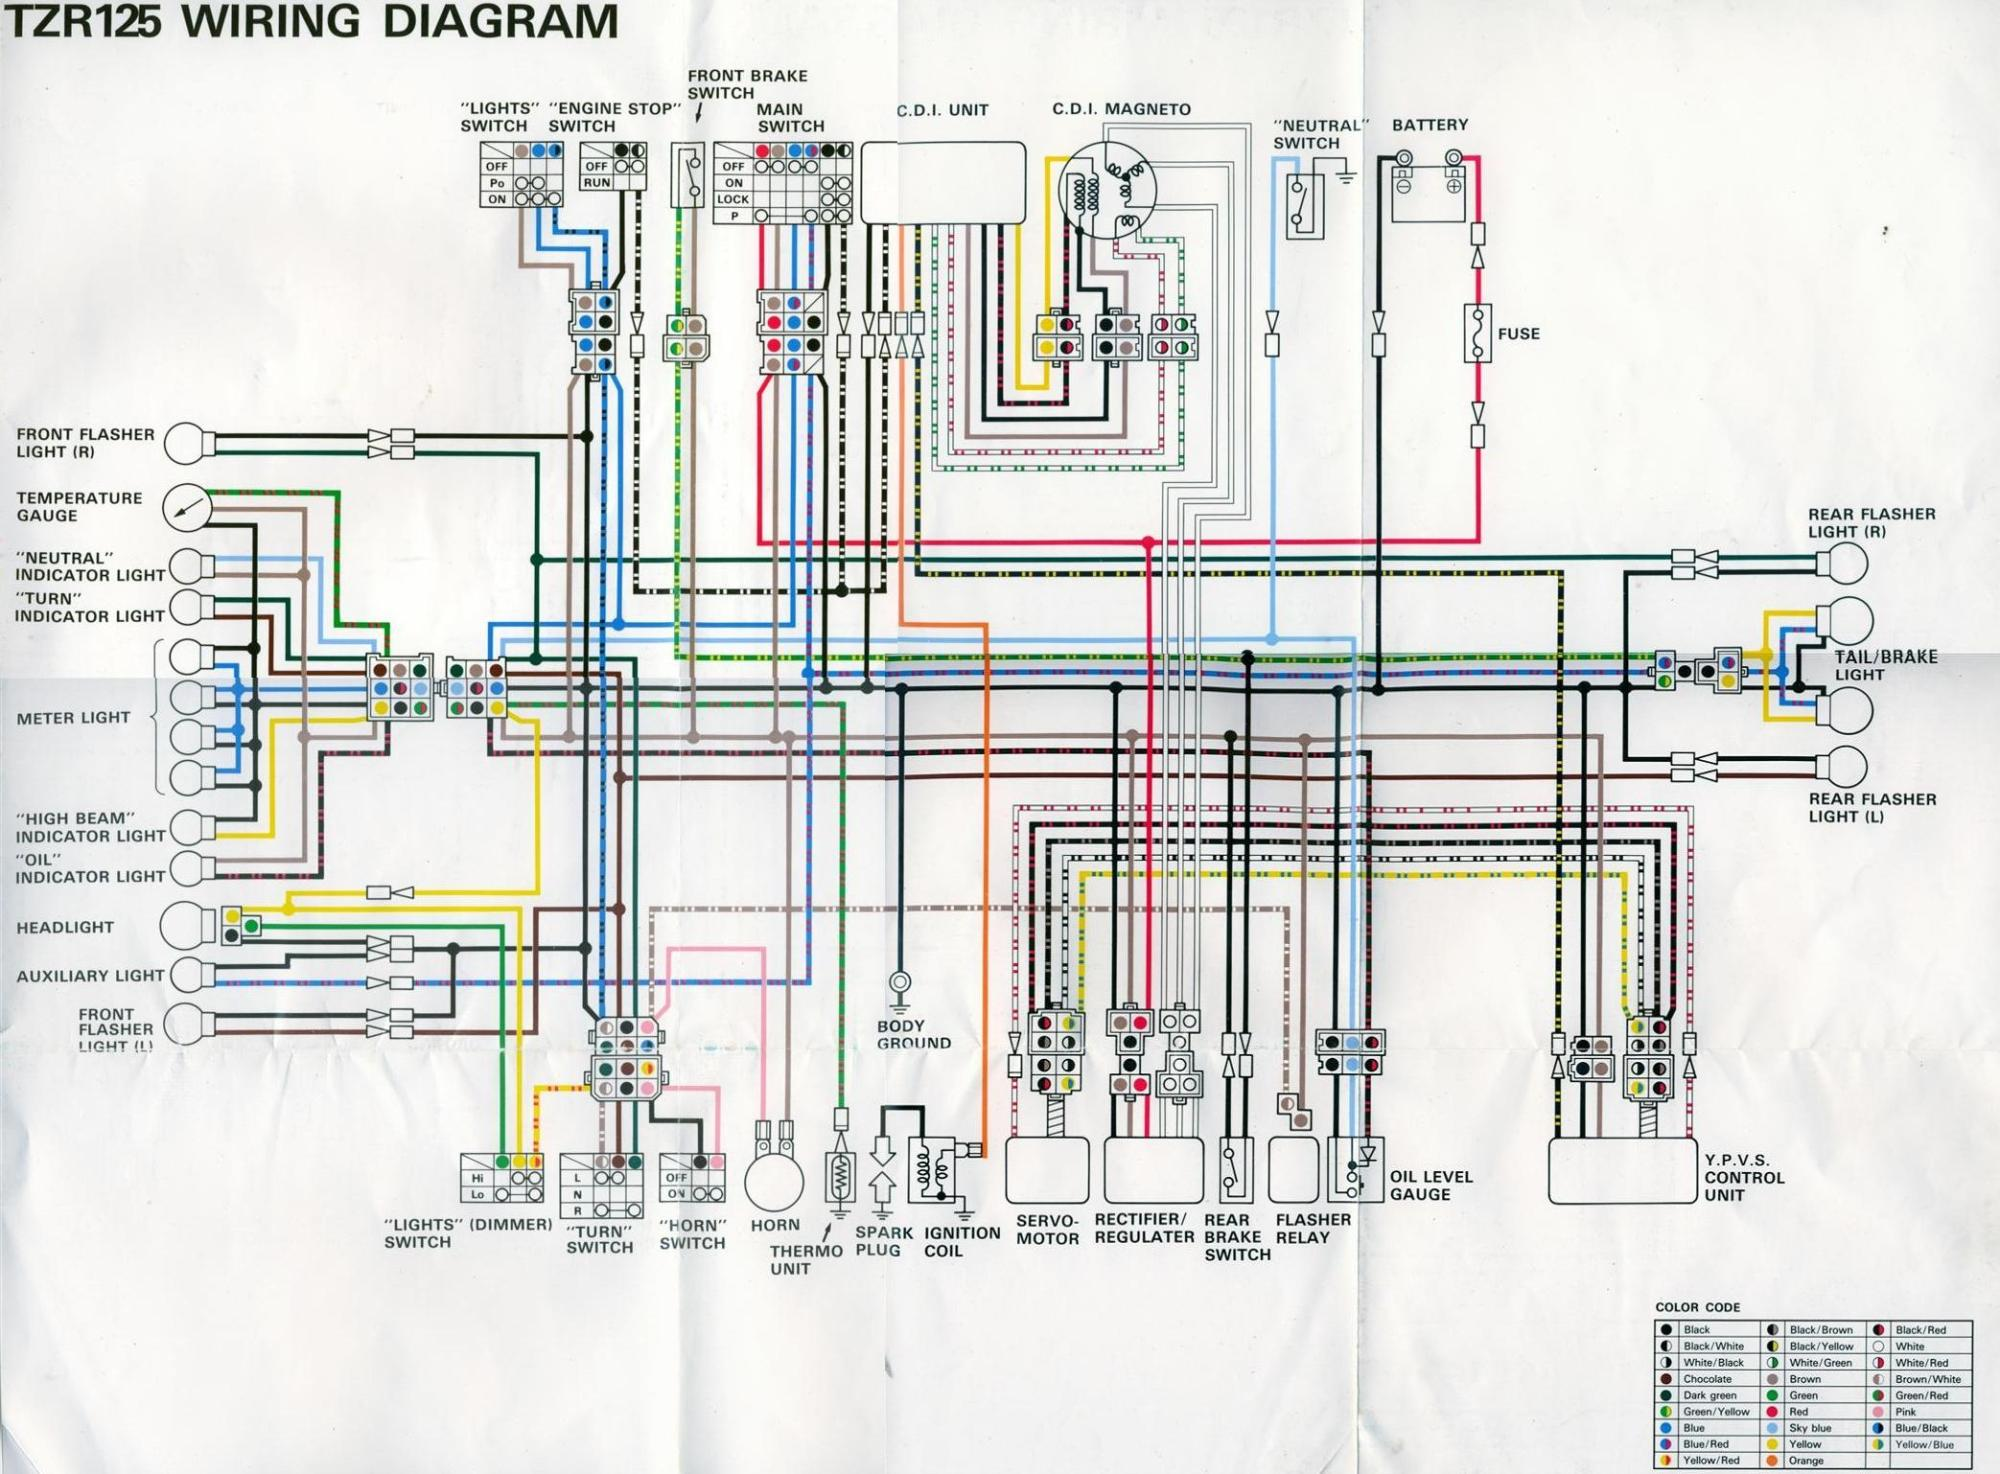 hight resolution of yamaha dt 125 wiring diagram wiring diagram third level rh 15 13 jacobwinterstein com 1979 yamaha dt 125 wiring diagram yamaha dt 125 r wiring diagram